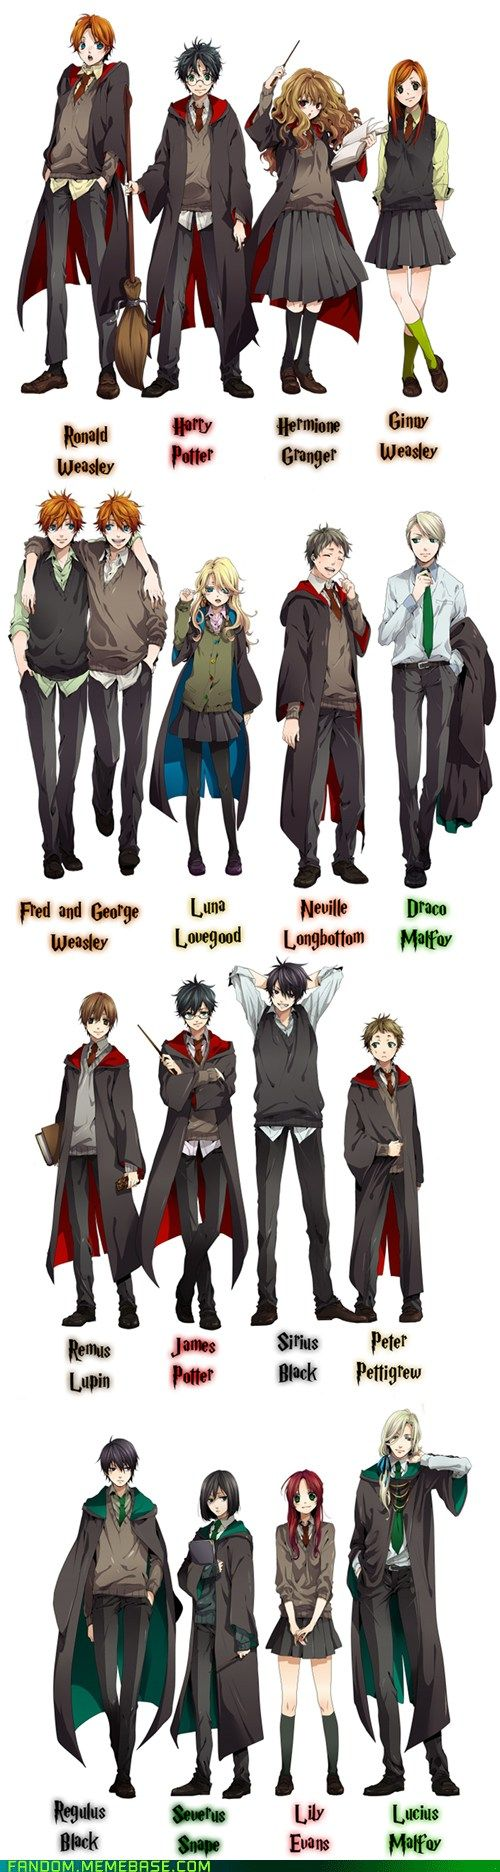 Harry Potter Anime <3 <<<<<< I NEED THIS!